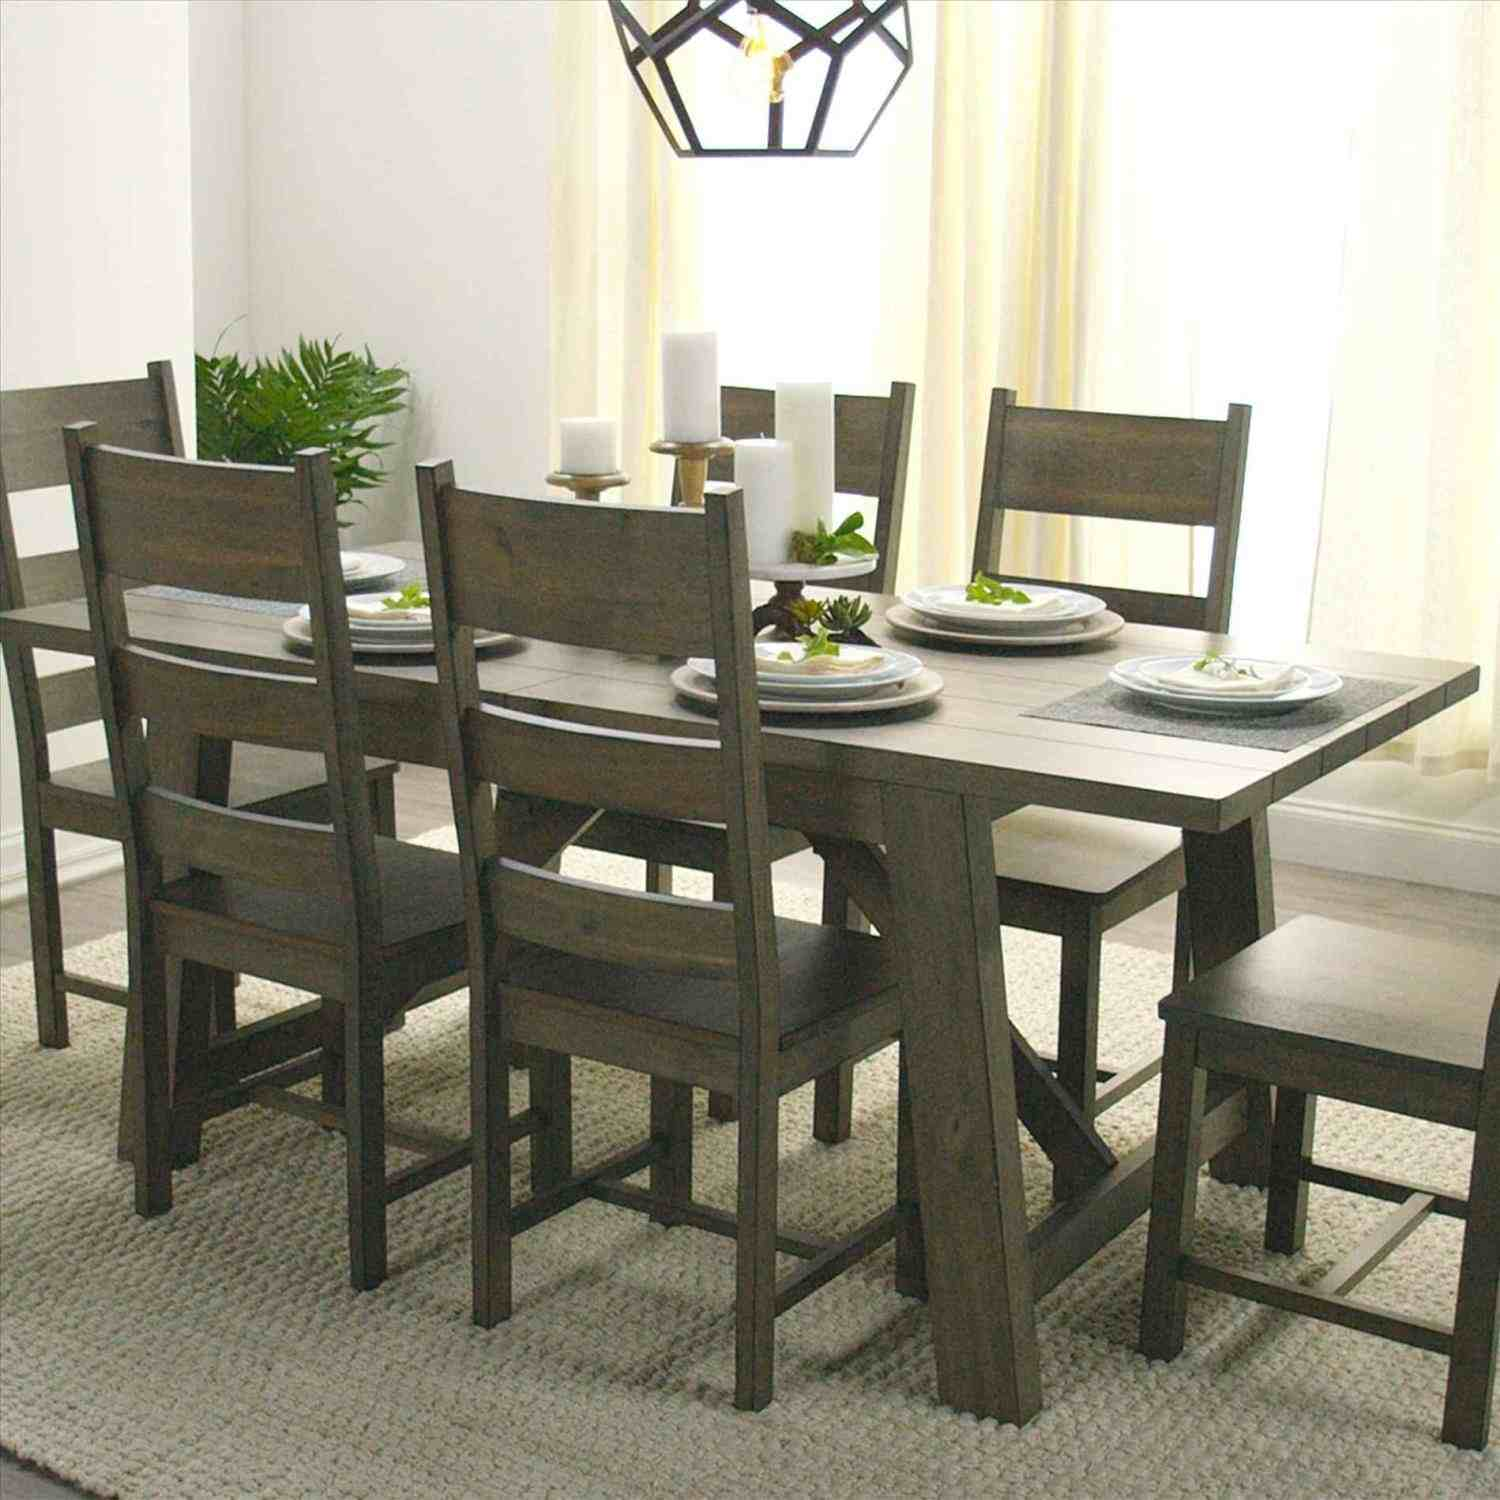 farm ideas modern black table pads wishbone chairs laurel living furniture side for cha foundry cushions accent dining unfinished farmhouse metal room with full size west elm